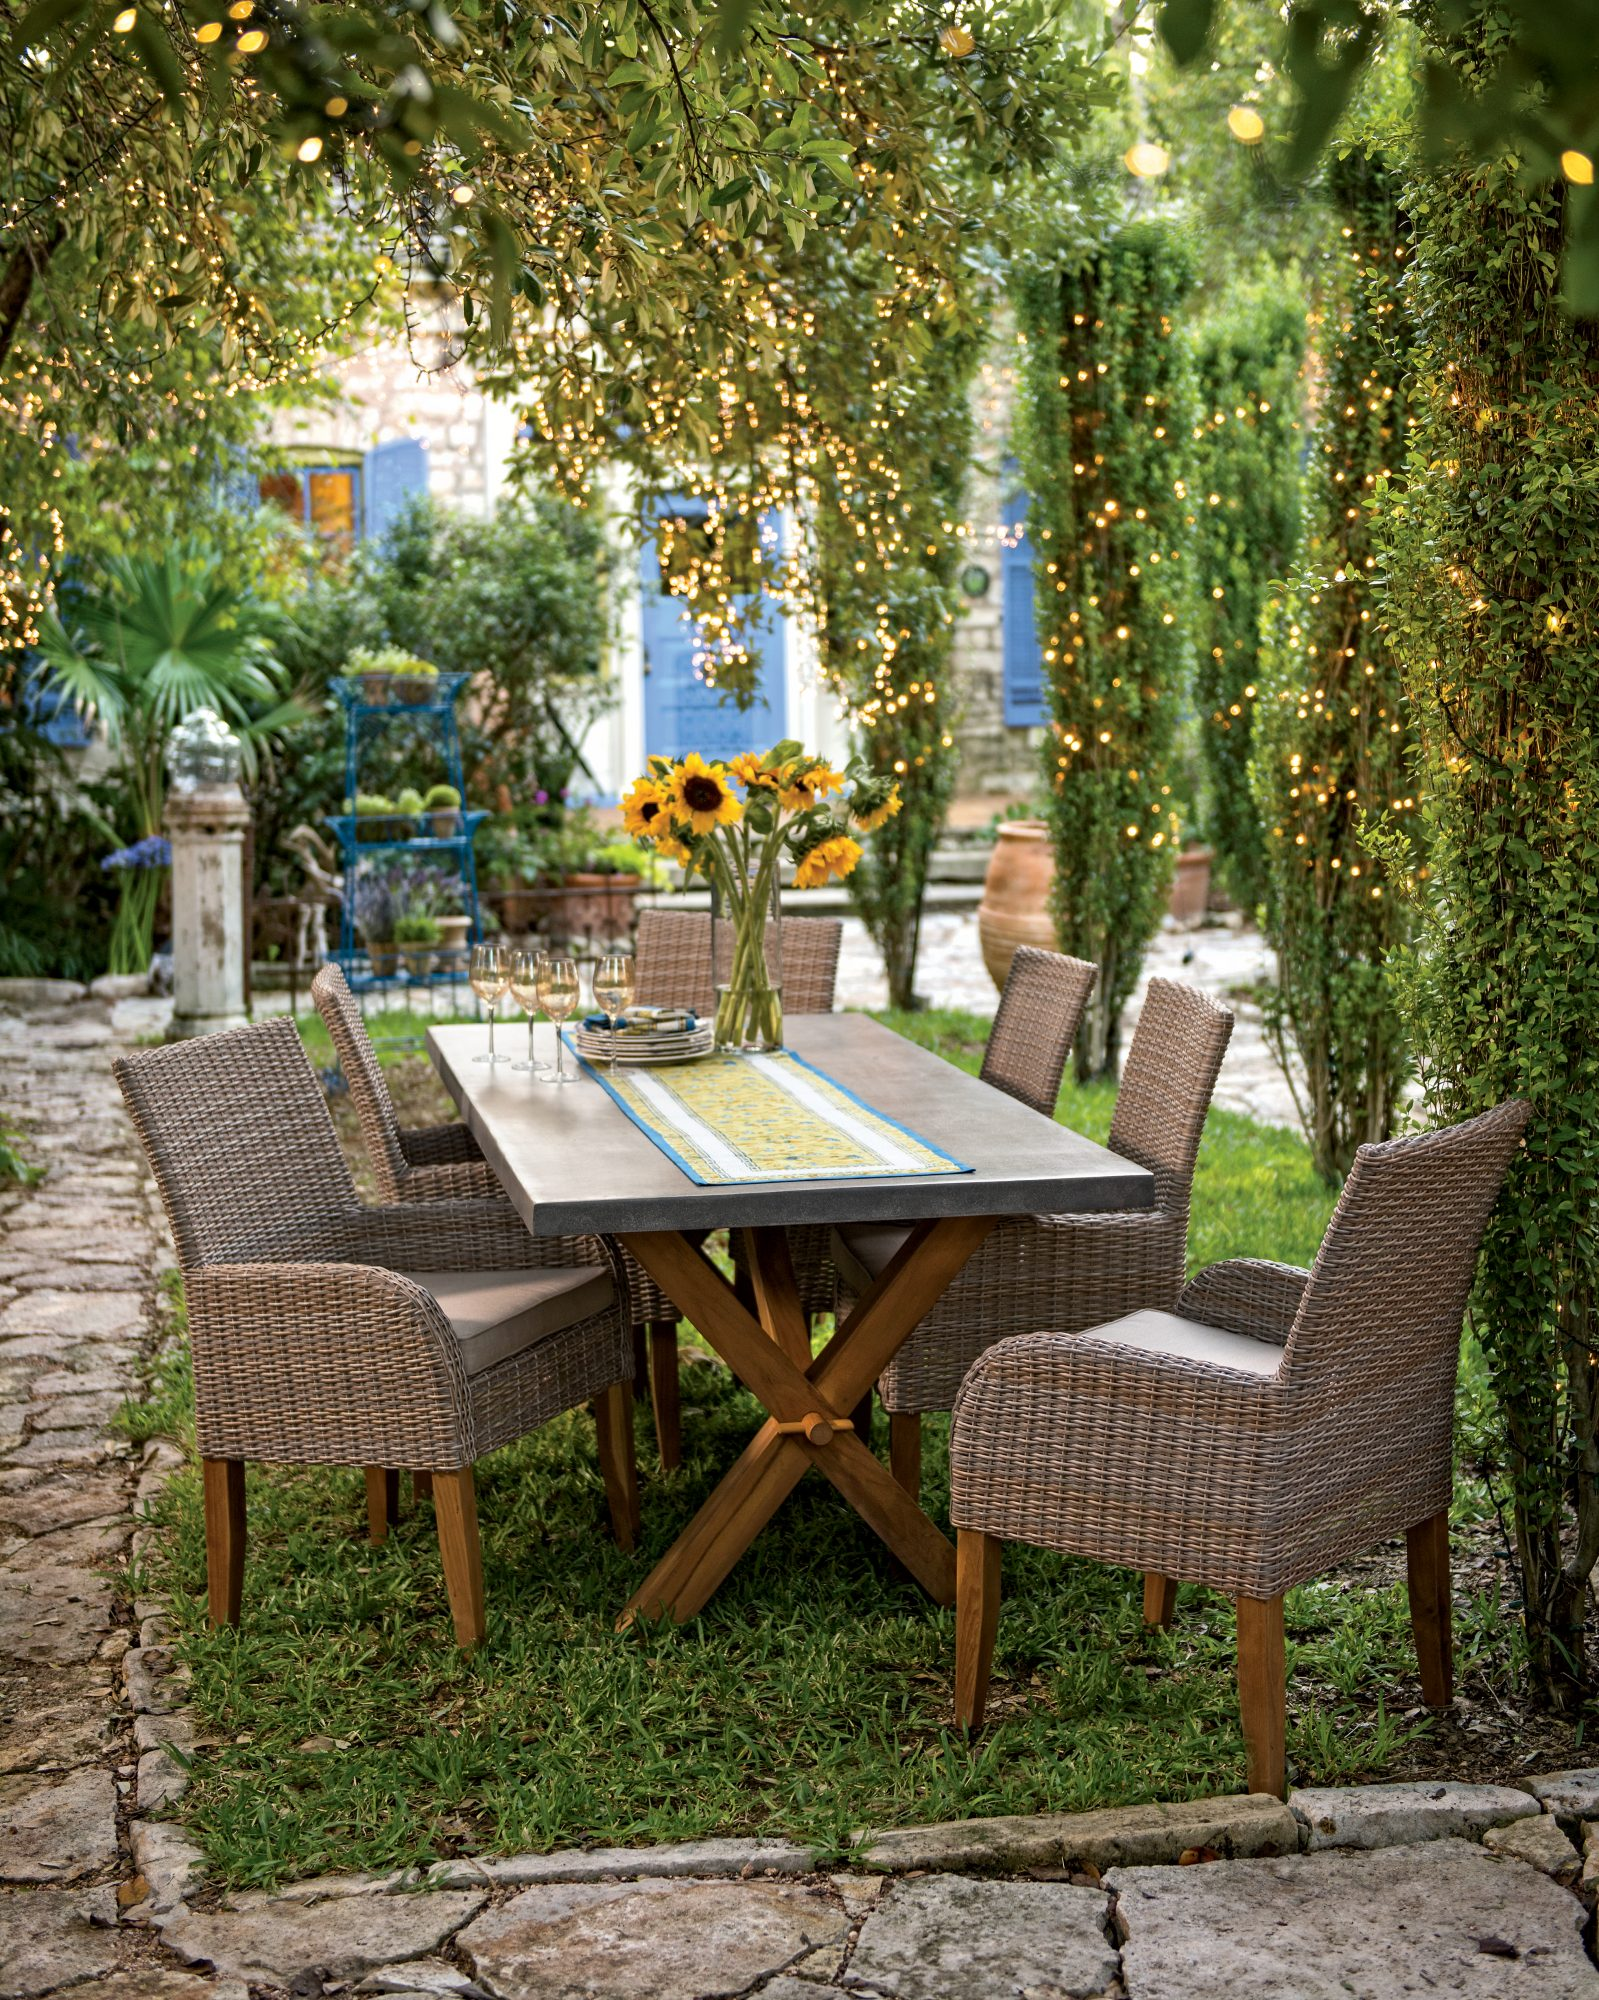 Outdoor Room Dining Table Twinkle Lights